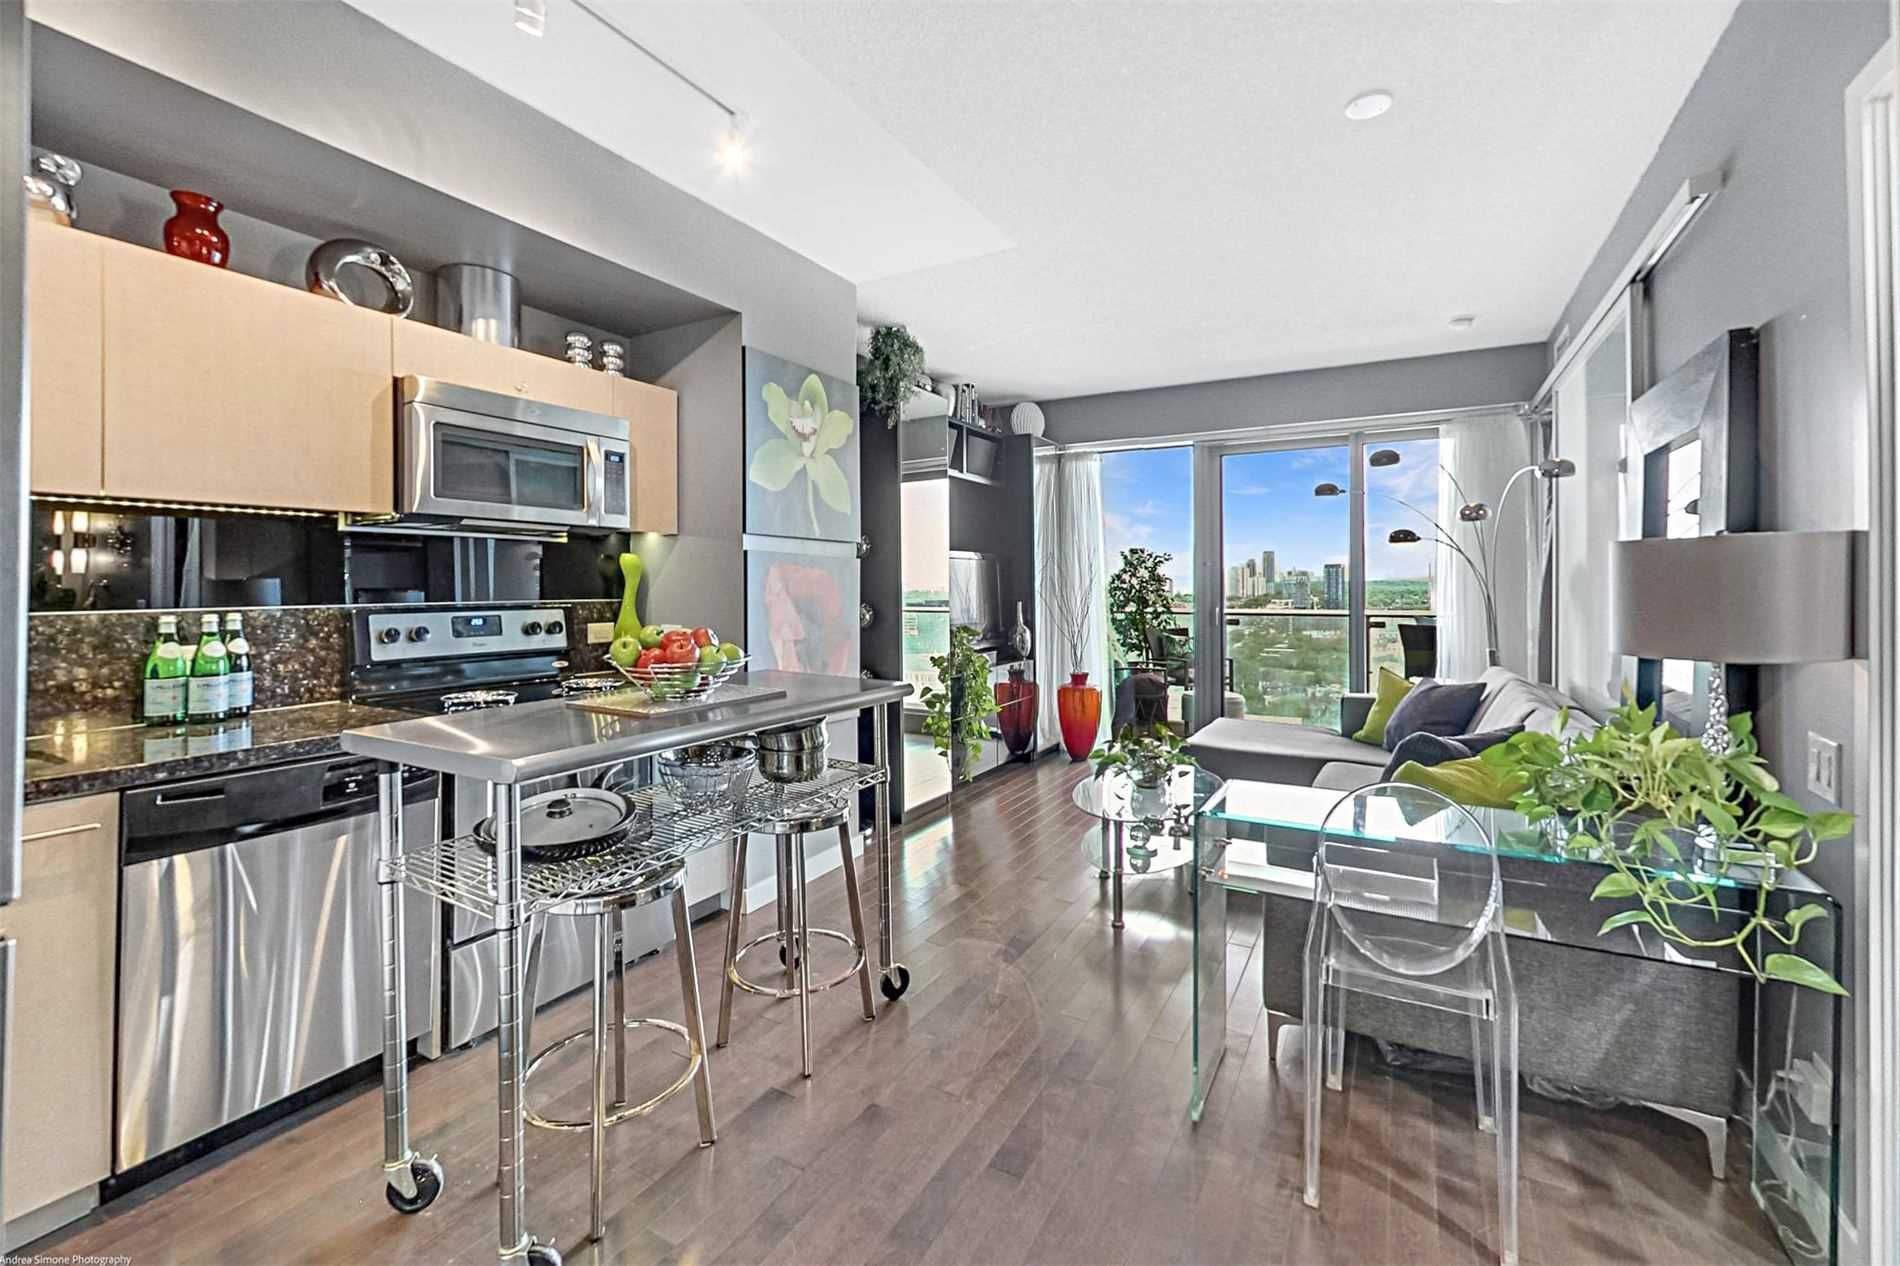 390 Cherry St, unit 2204 for sale in Toronto - image #1